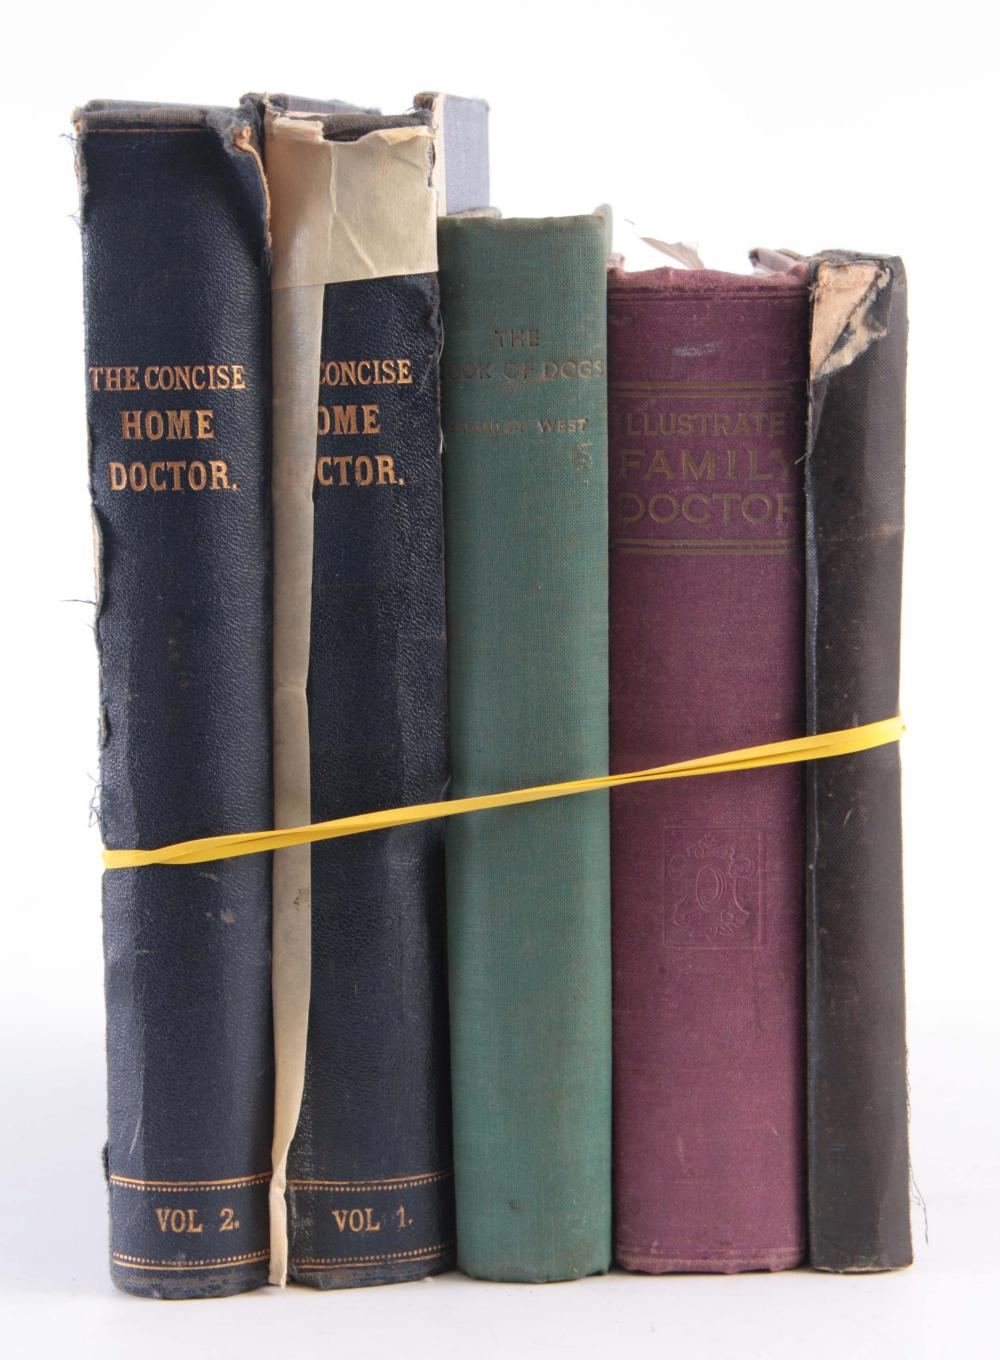 A SELECTION OF MEDICAL BOOKS including The Concise